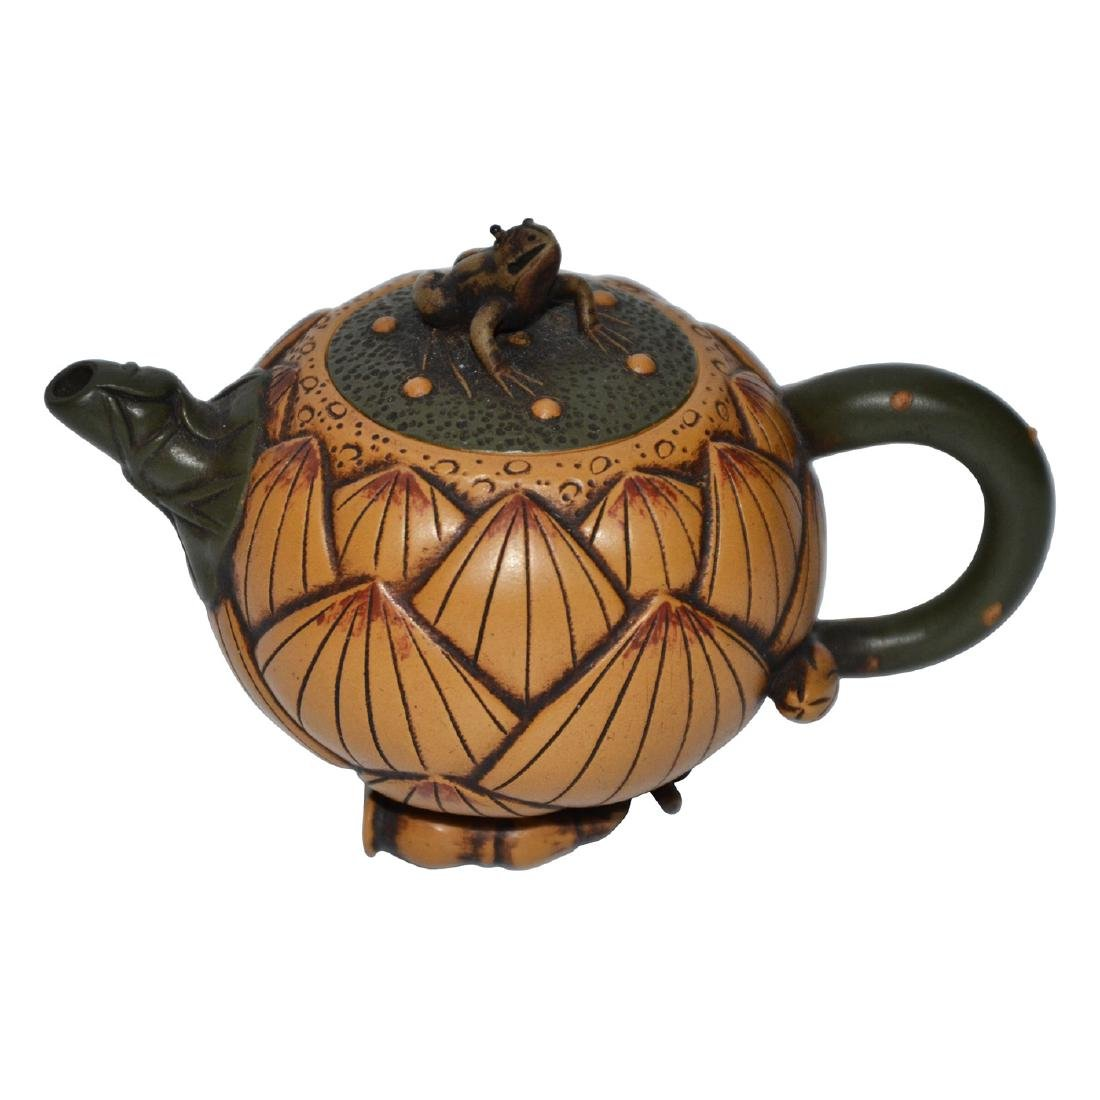 Jiang Rong, Lotus Root Form Zisha Teapot with Frog Knop